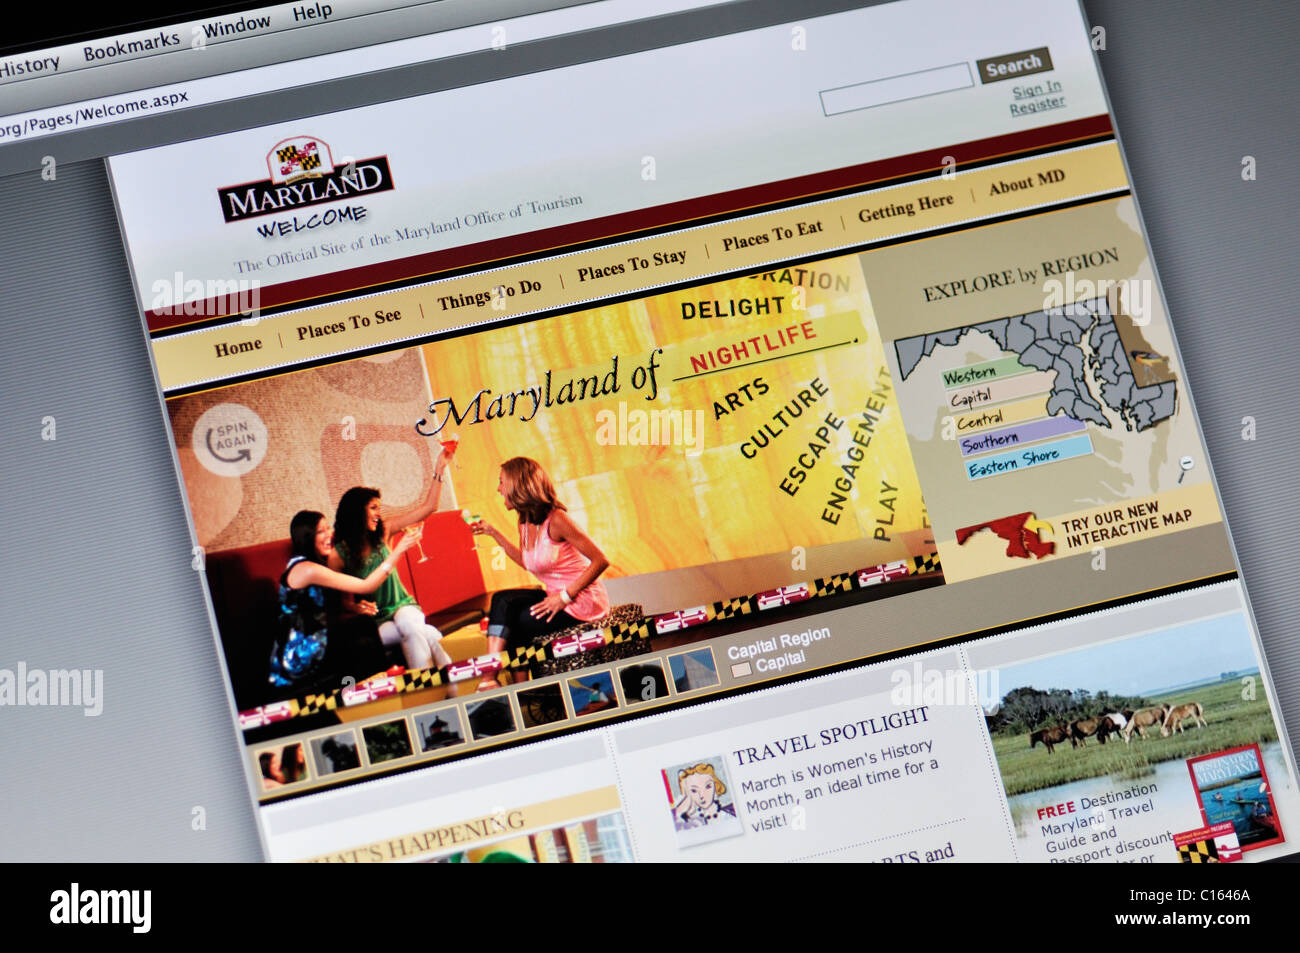 Maryland official state tourism website - Stock Image